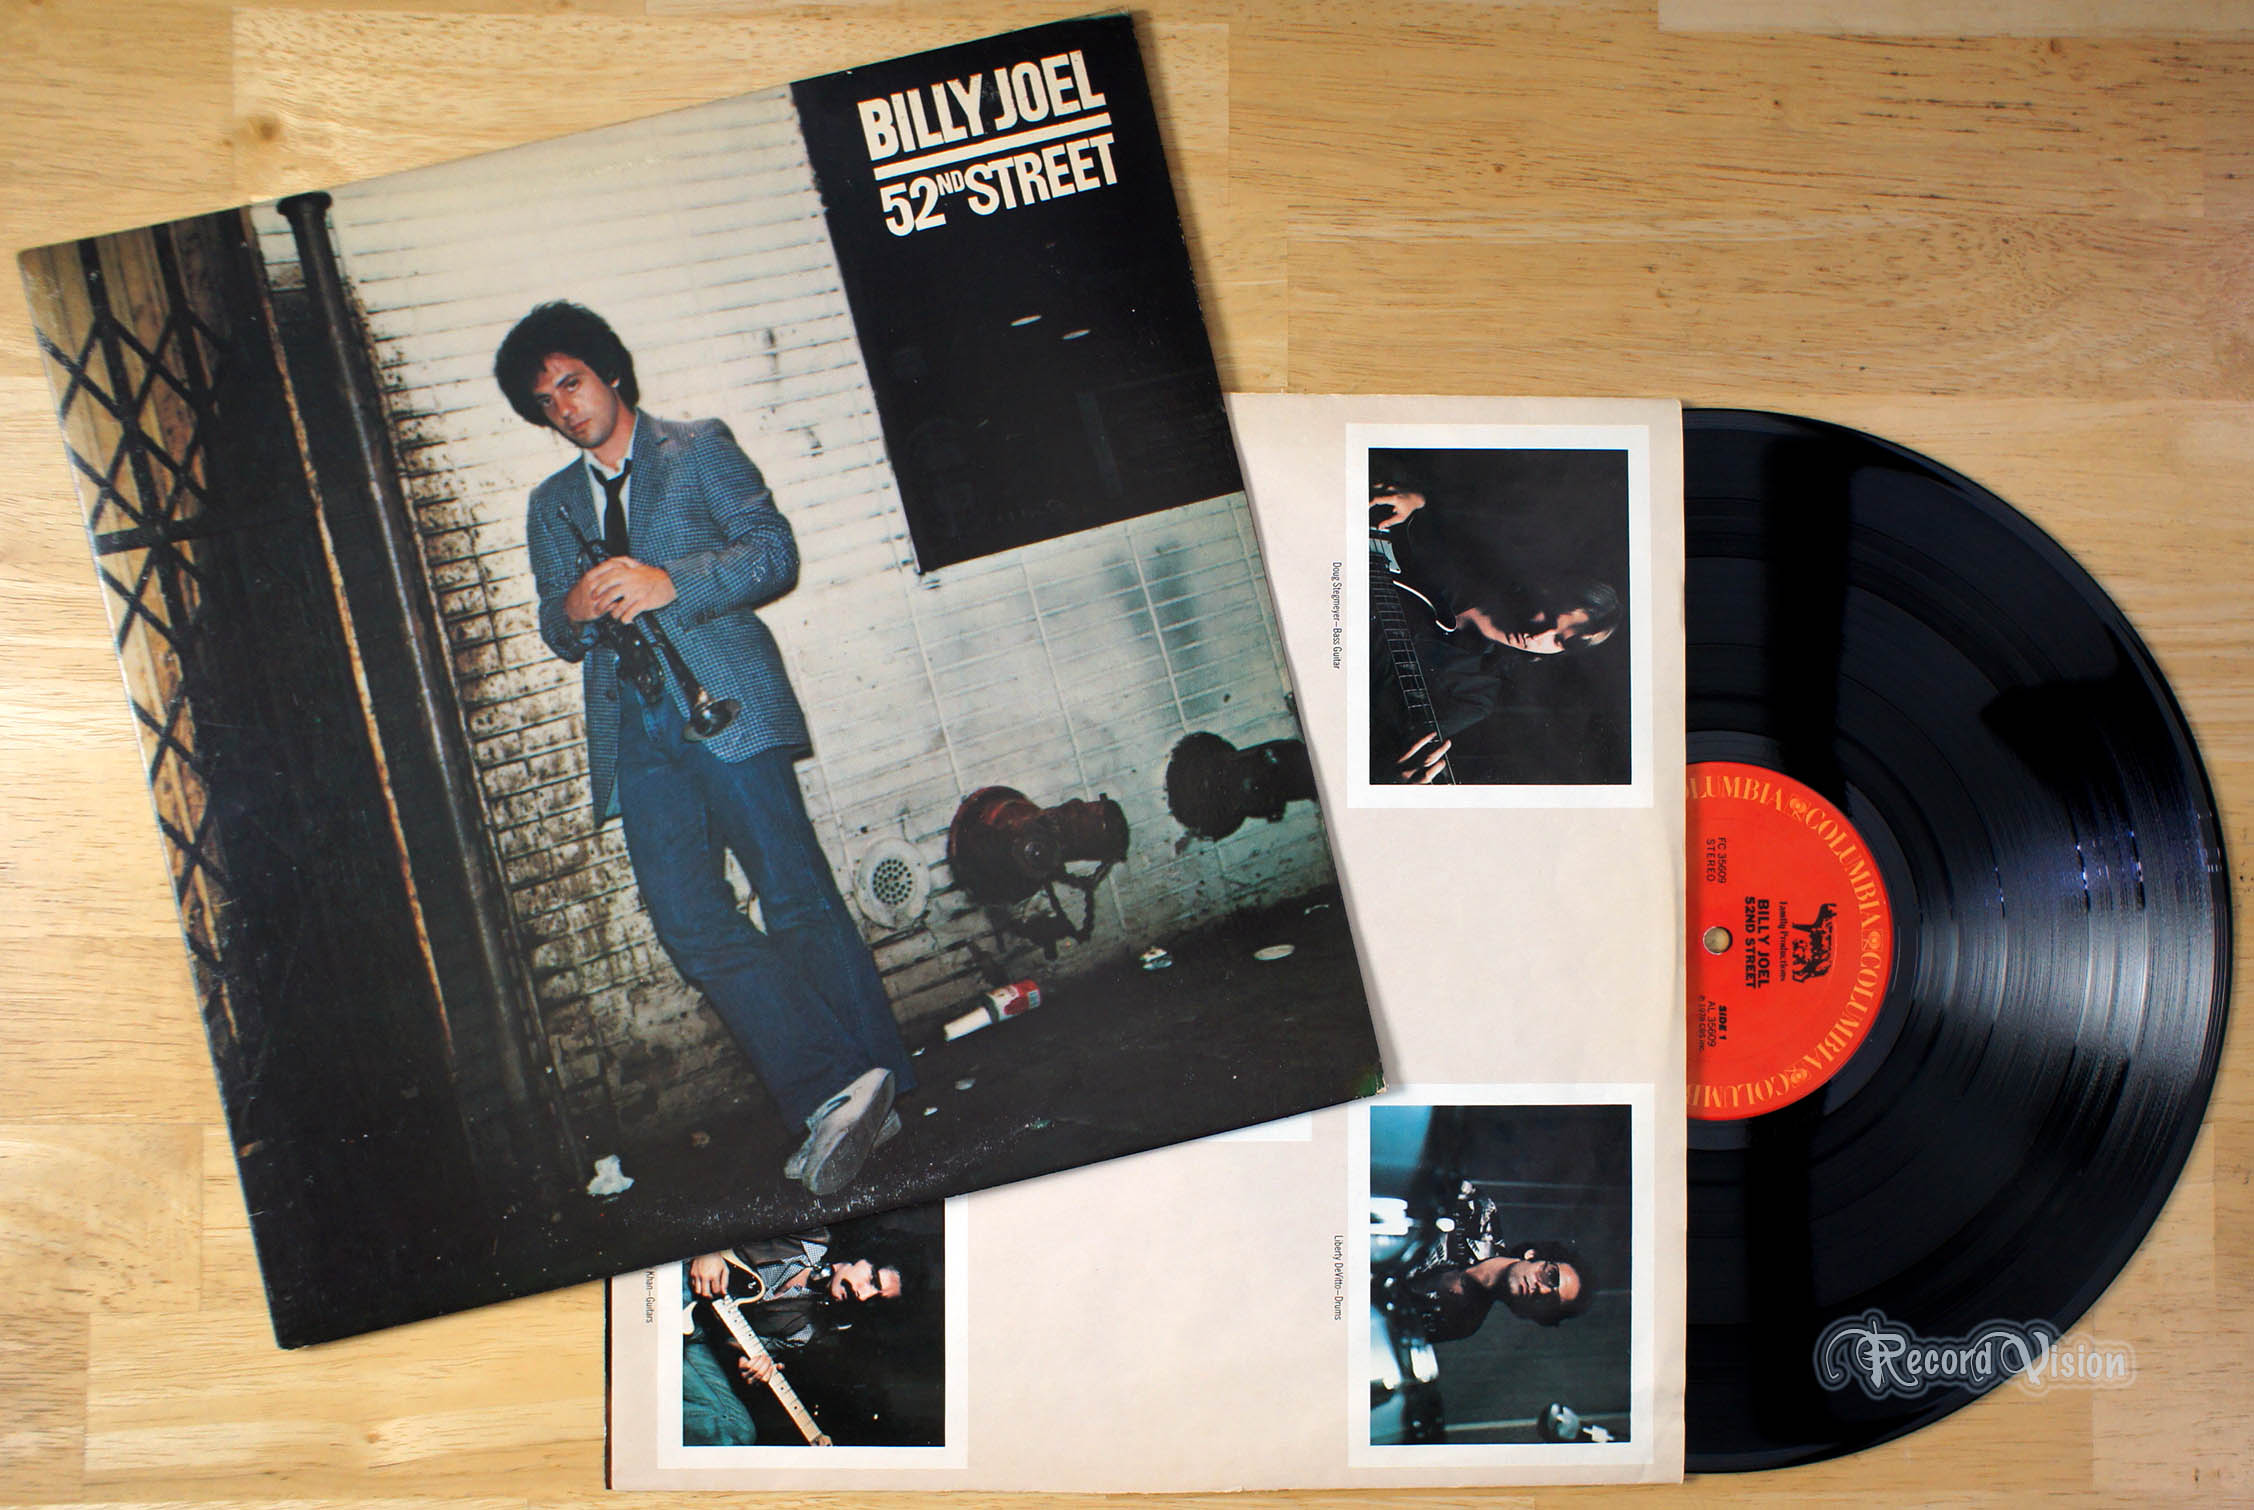 Billy Joel - 52nd Street Vinyl